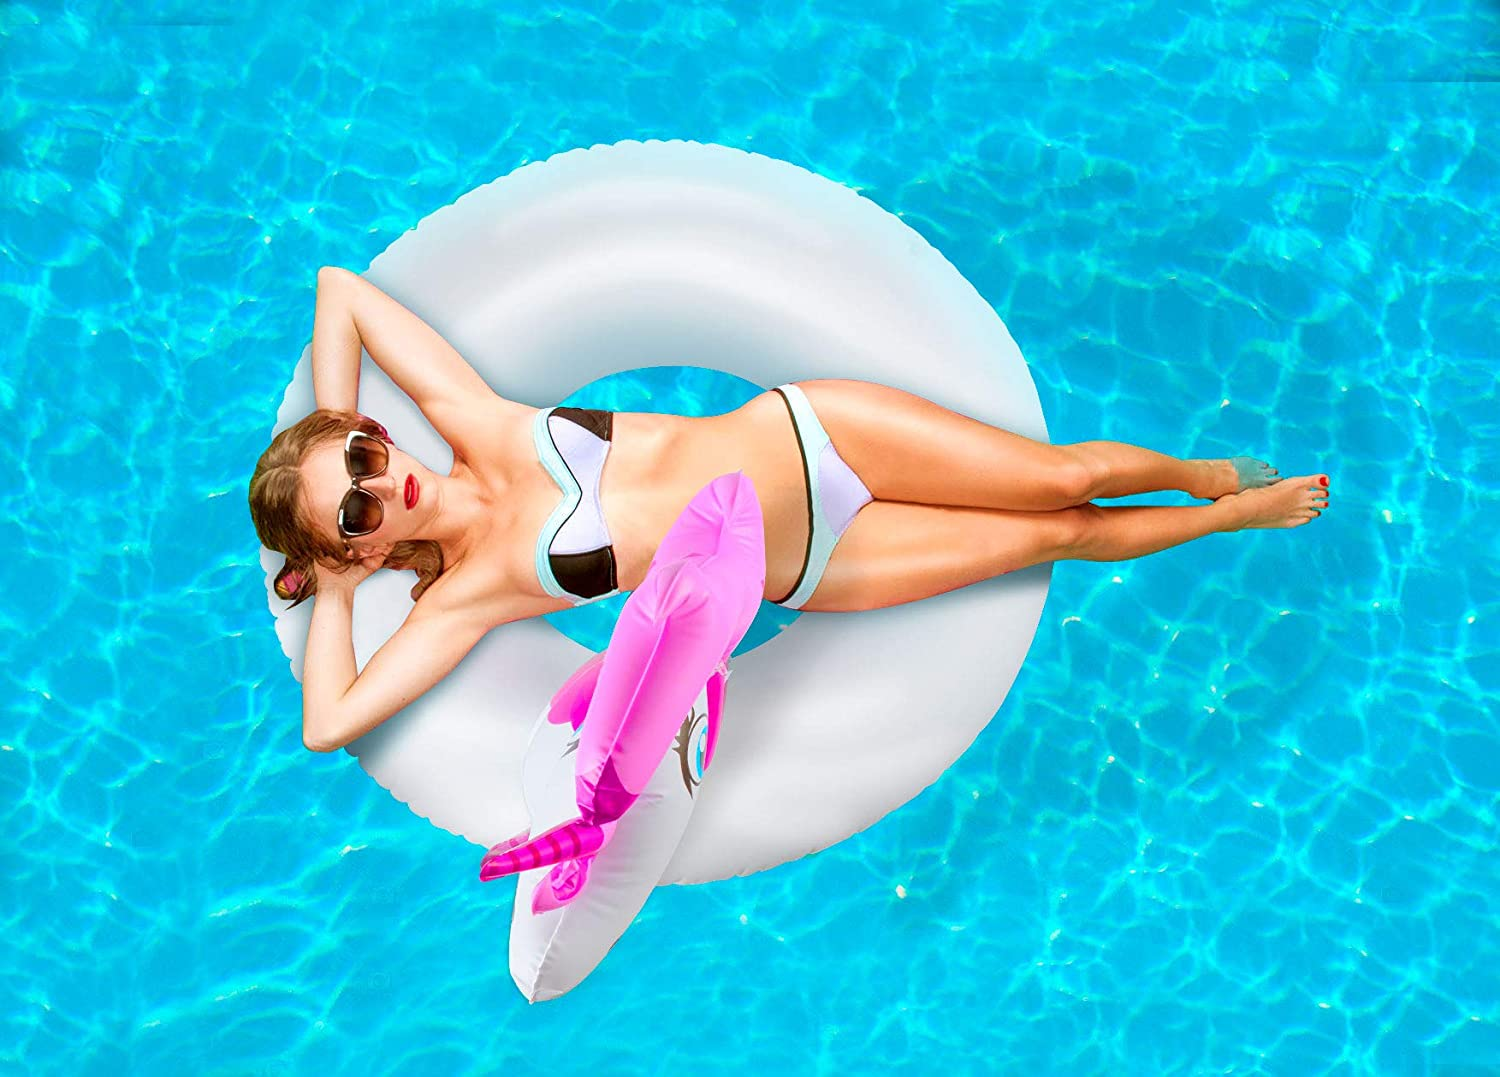 Chwares Pool Floats,Inflatable Unicorn Swimming ring for Adults and Kids,Beach Lounge Pool Floats Seat Boat Children Swimming Pool Loungers Outdoor Pool Toys Float Raft 74x82x80cm Kids Swim Rings